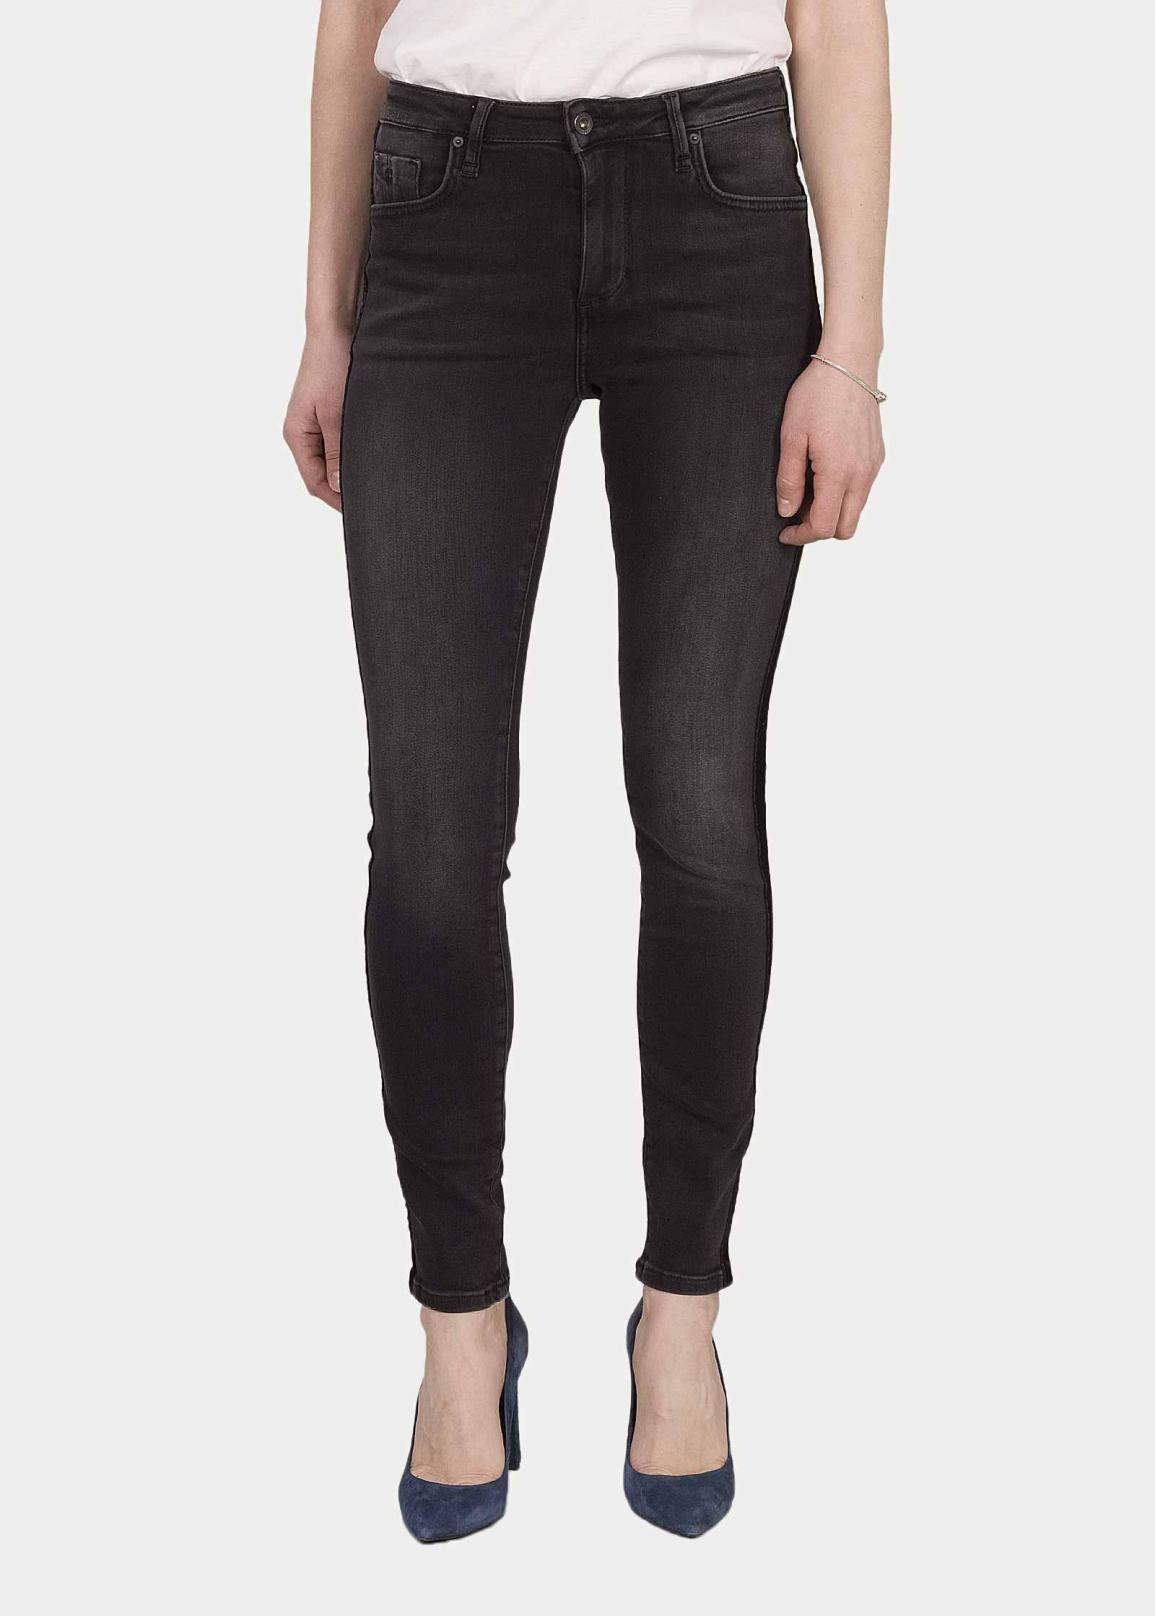 Mustang® Mia Jeggings - Denim Black